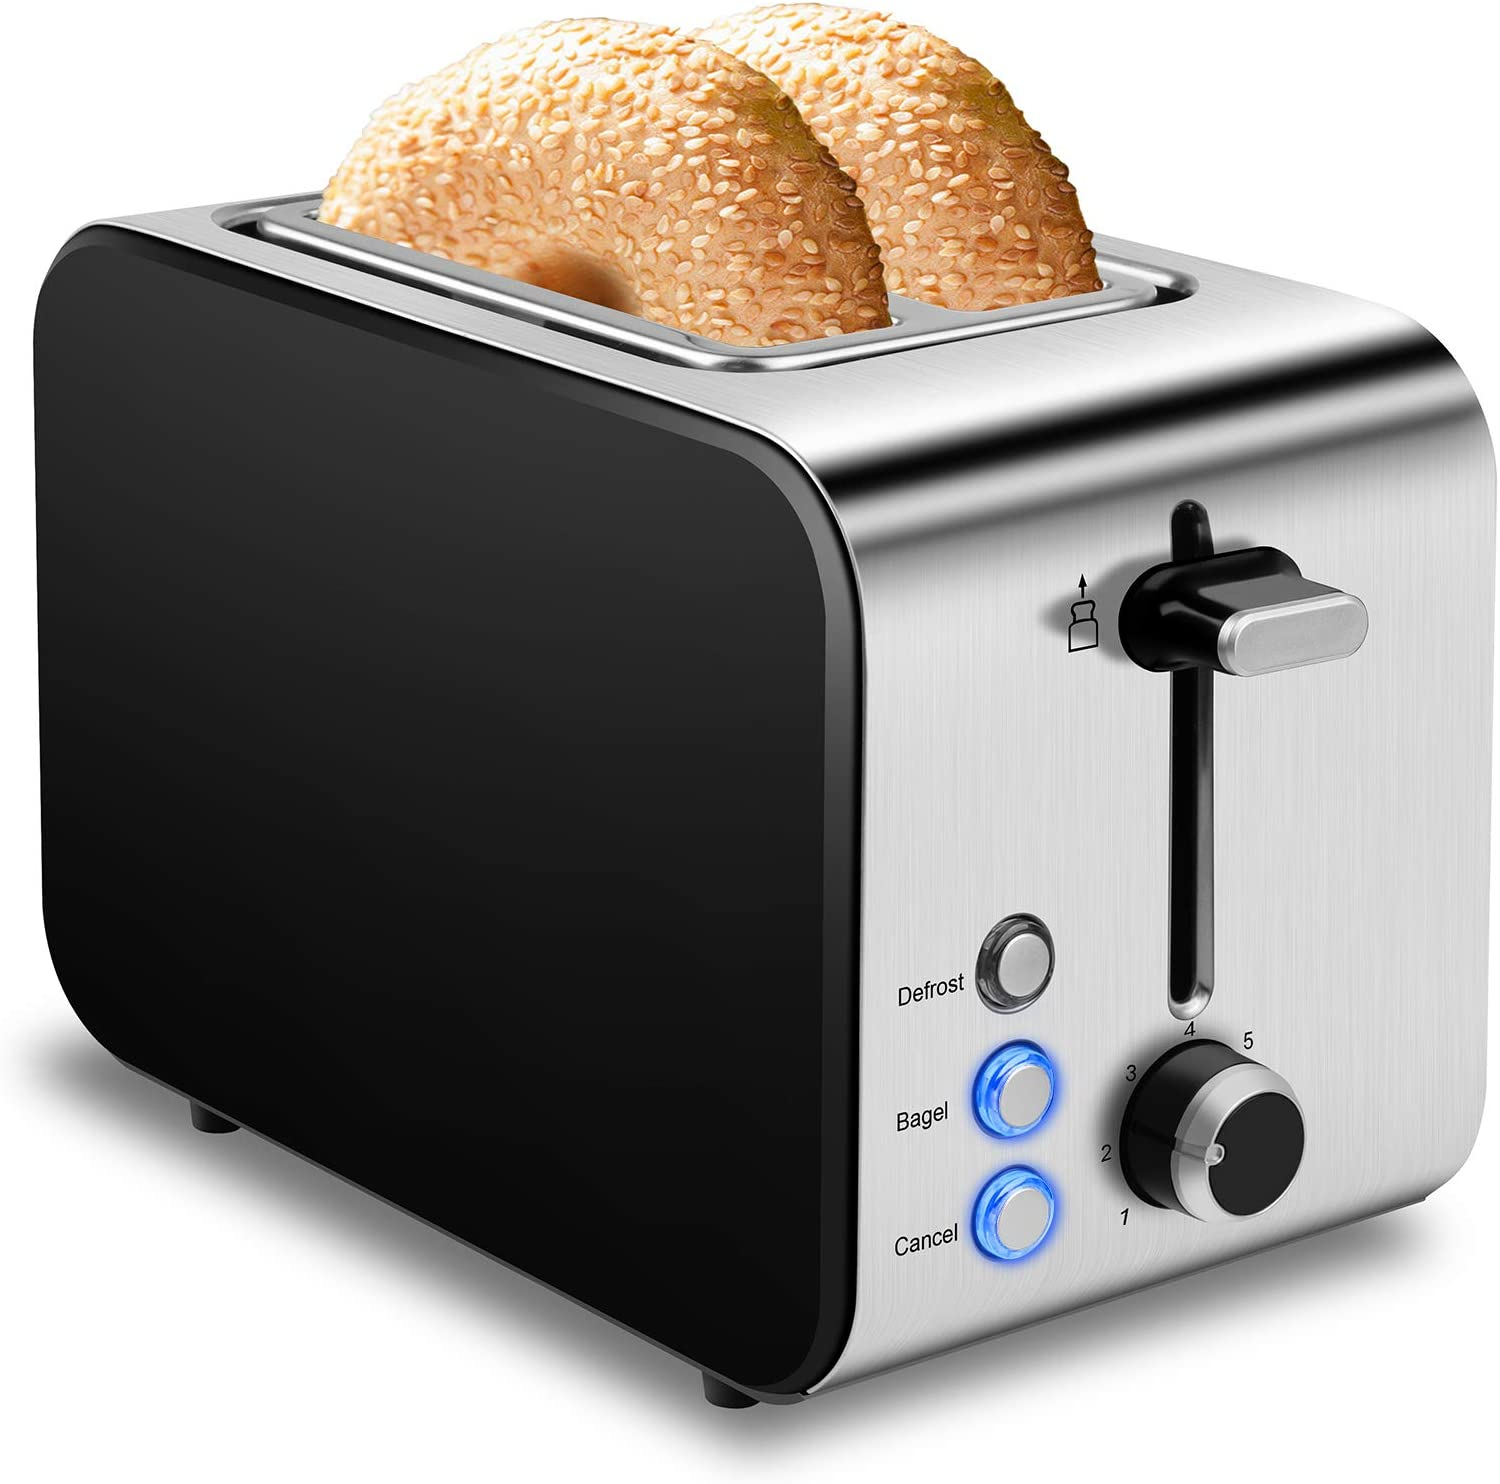 Toaster 2 Slice Best Rated Prime Toasters 1.5in Wide Slot Toaster 2 Slice Stainless Steel Toaster 7 Shade Settings Toasters Defrost/Begal/Cancel with Removable Crumb Tray for Bread, Waffles, Small Retro Evenly Quickly Toaster